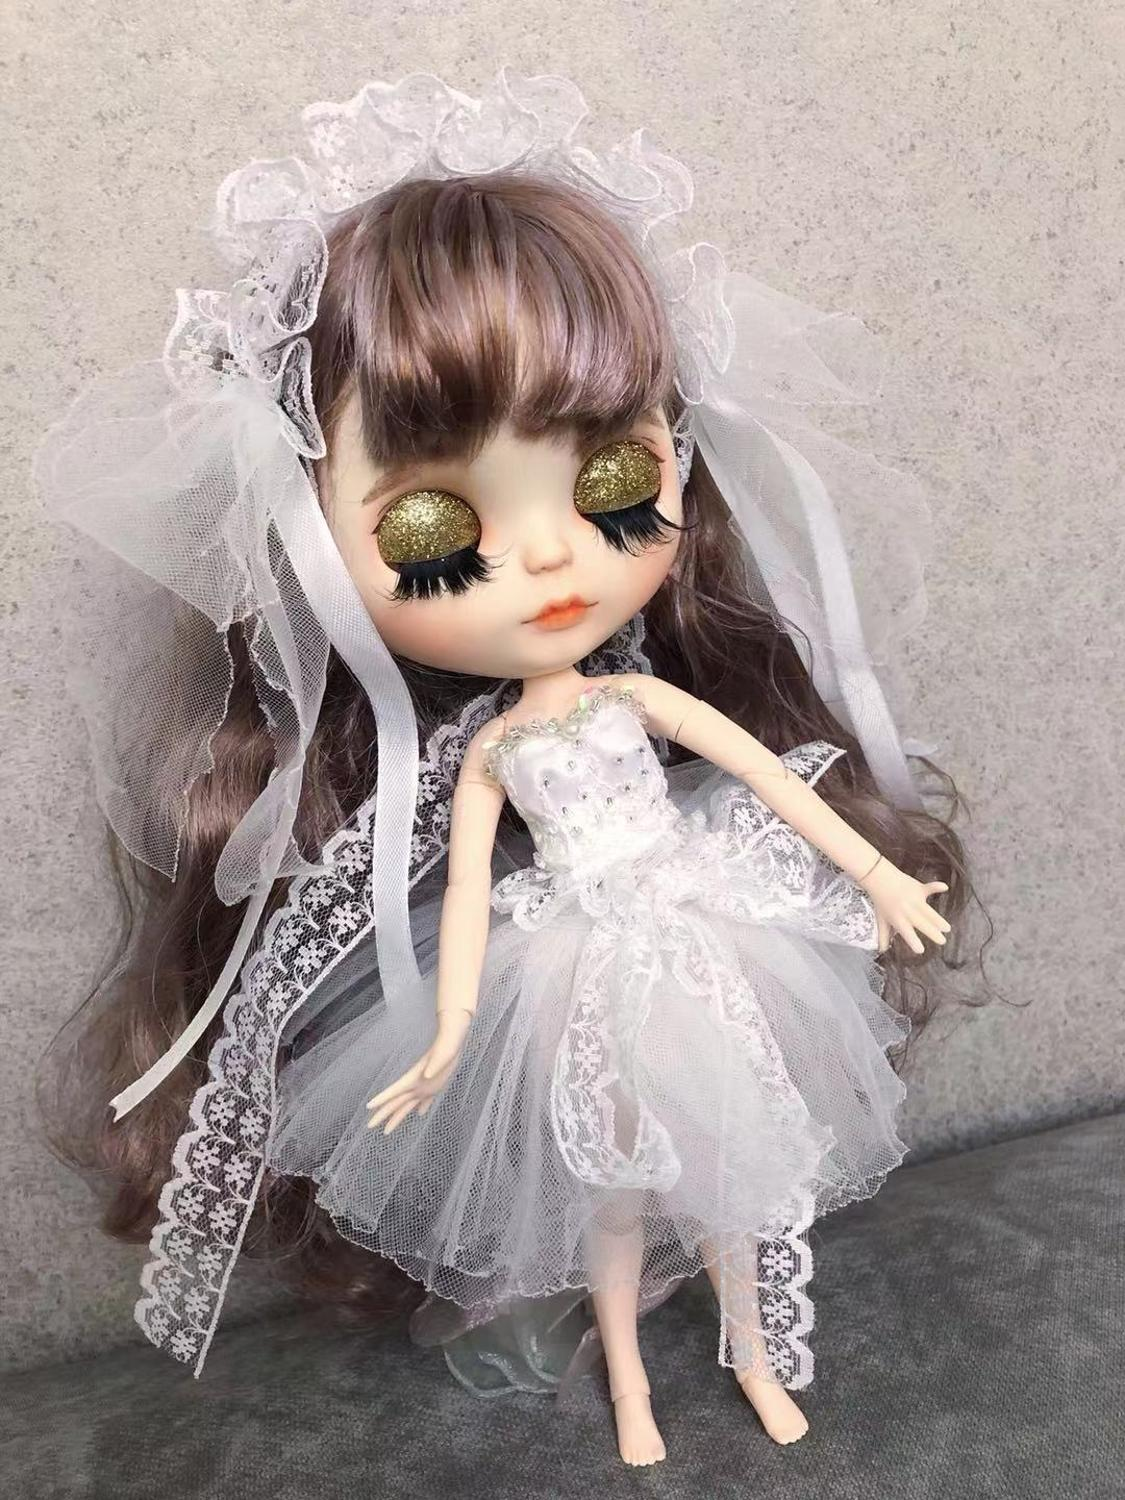 Blythe Nude Doll from Factory Golden Long Curly Hair With Make-up Eyebrow